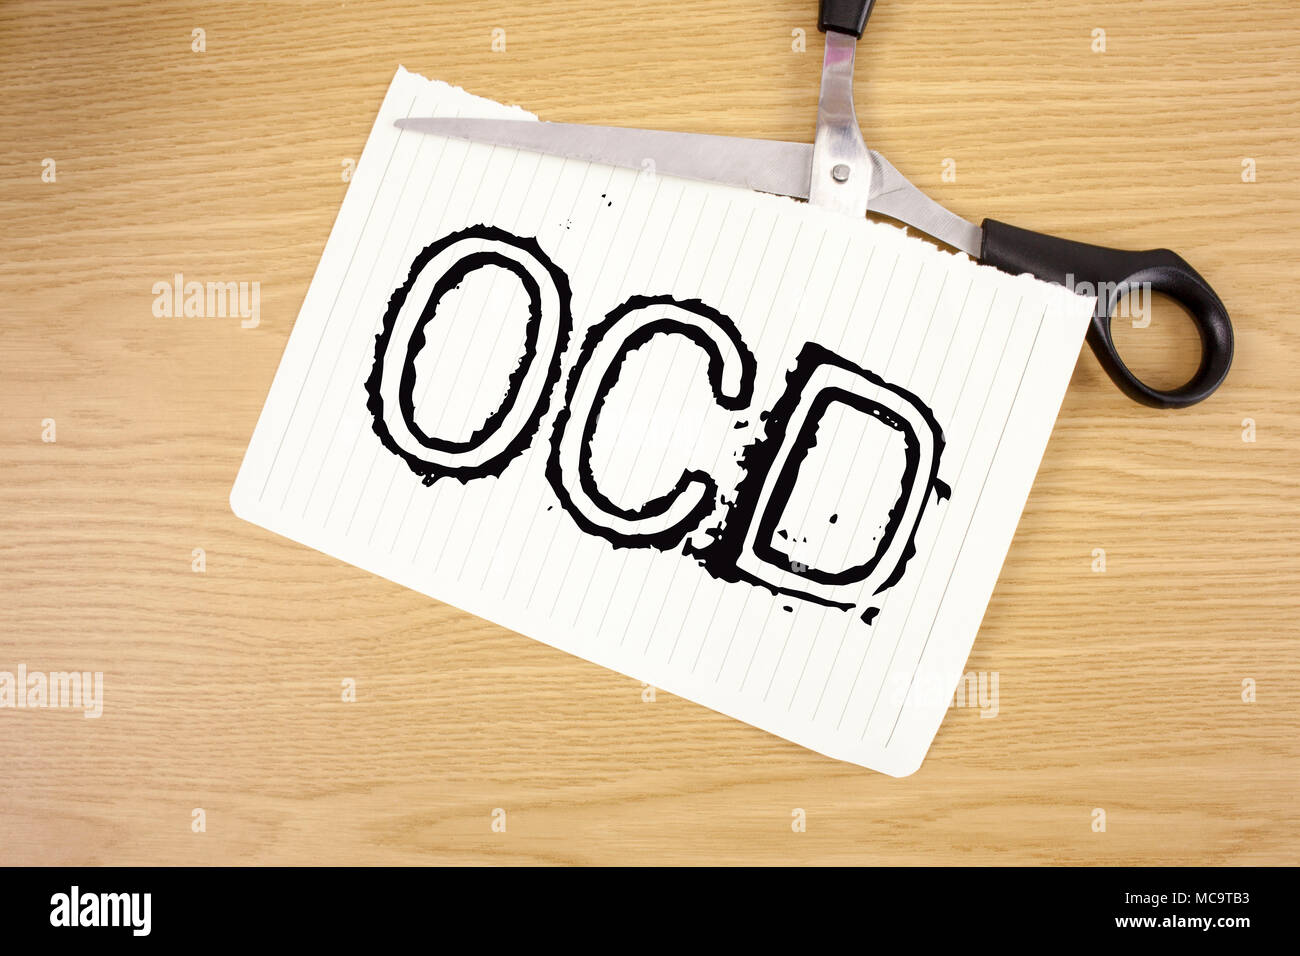 Ocd Anxiety Stock Photos Amp Ocd Anxiety Stock Images